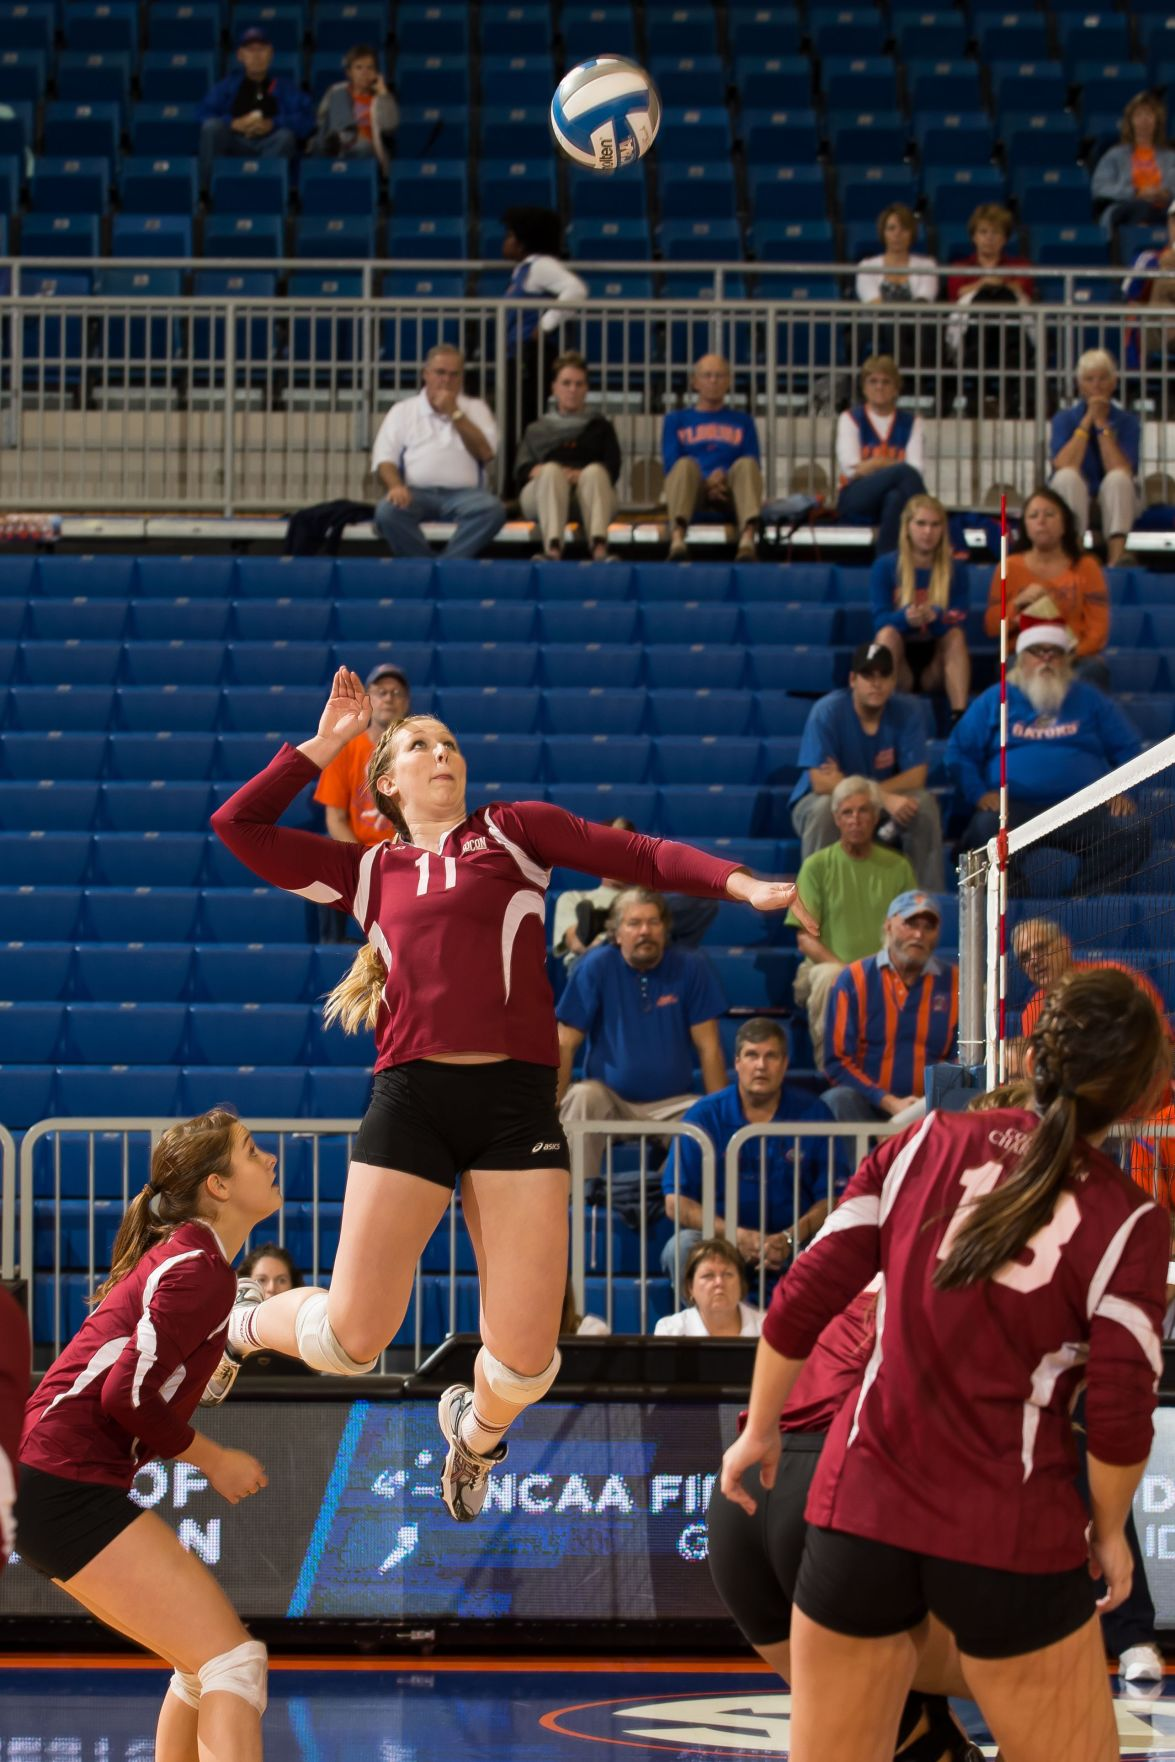 Cougars volleyball off to fast start